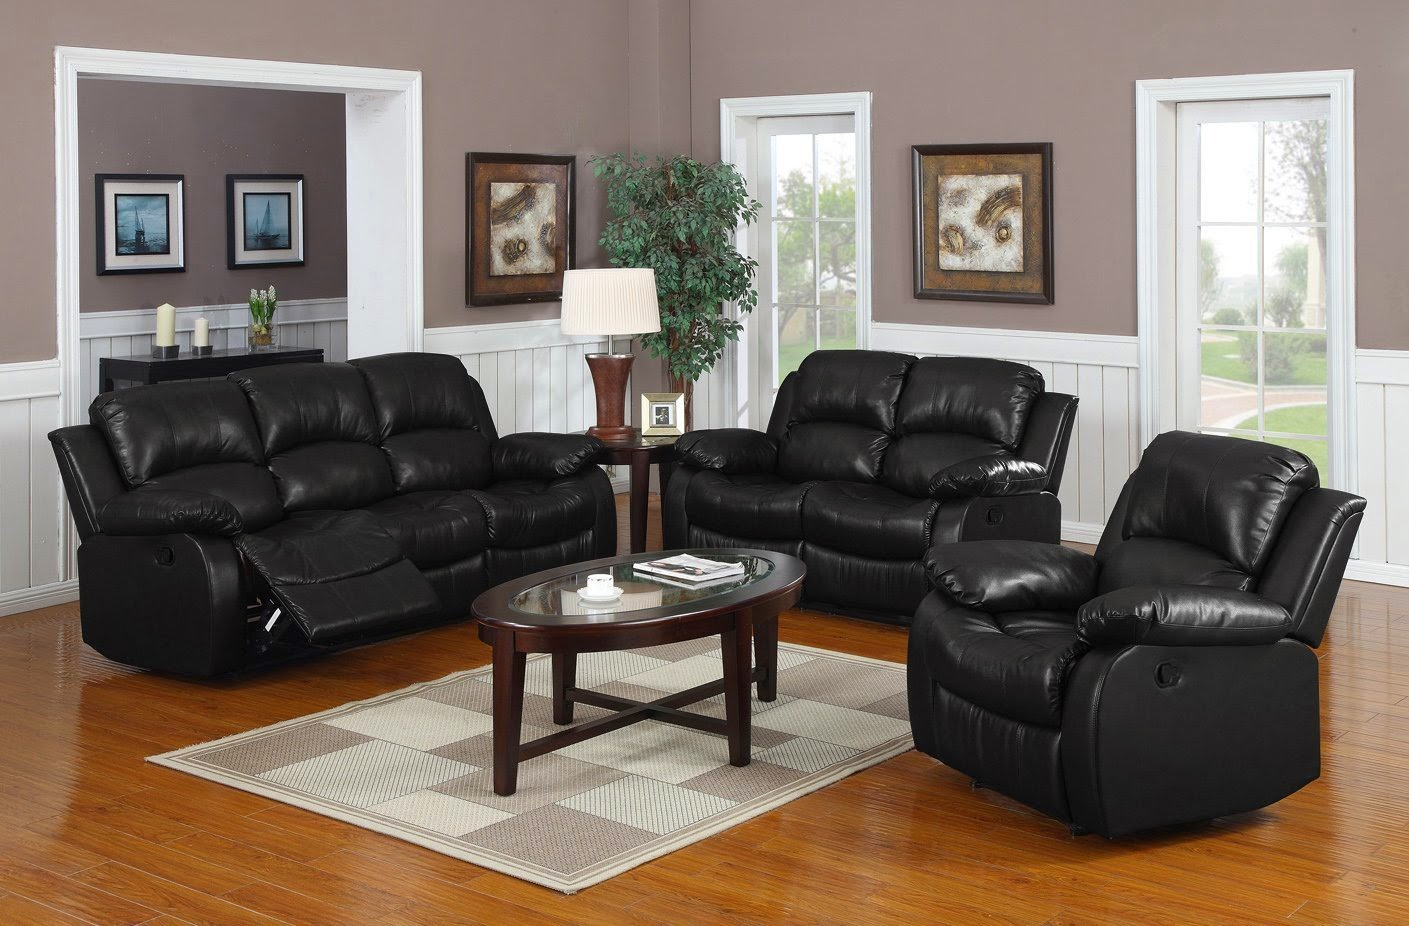 The Best Reclining Sofa Reviews Reclining Leather Couches For Sale